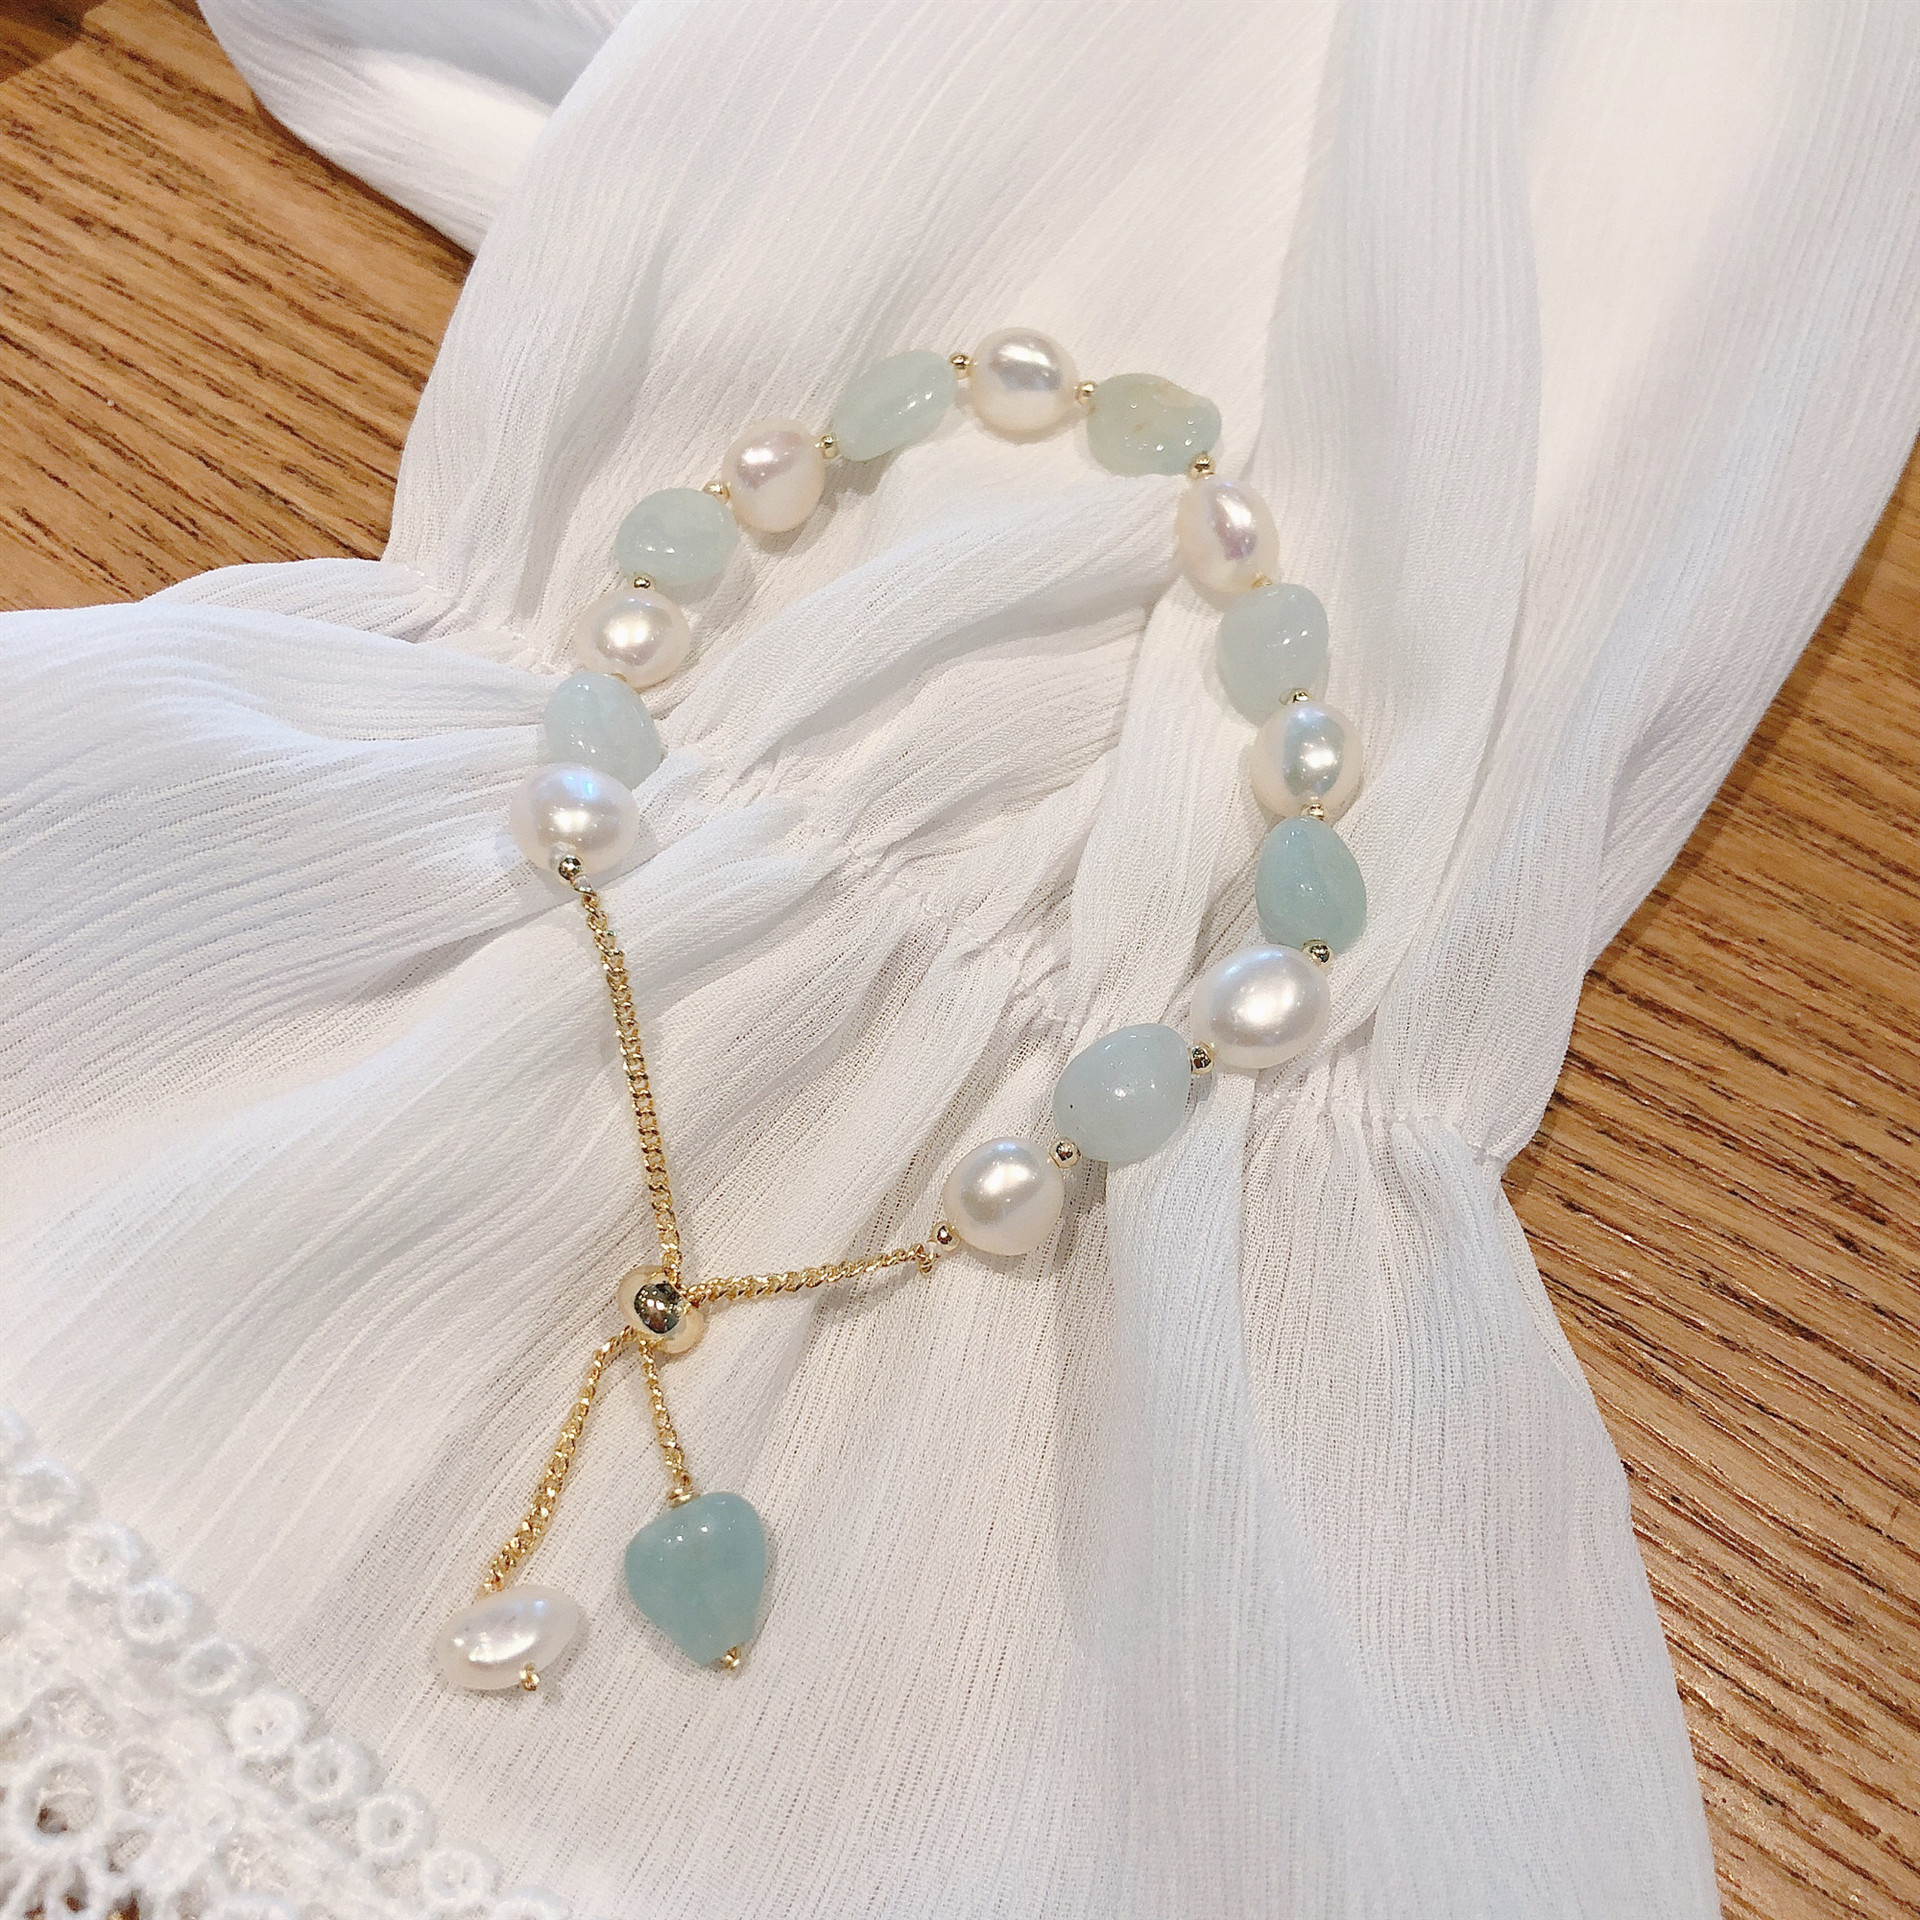 Genuine Natural Freshwater Pearl Bracelets For Women with Green Onyx Bead Adjustable Bangles Jewelry Gift